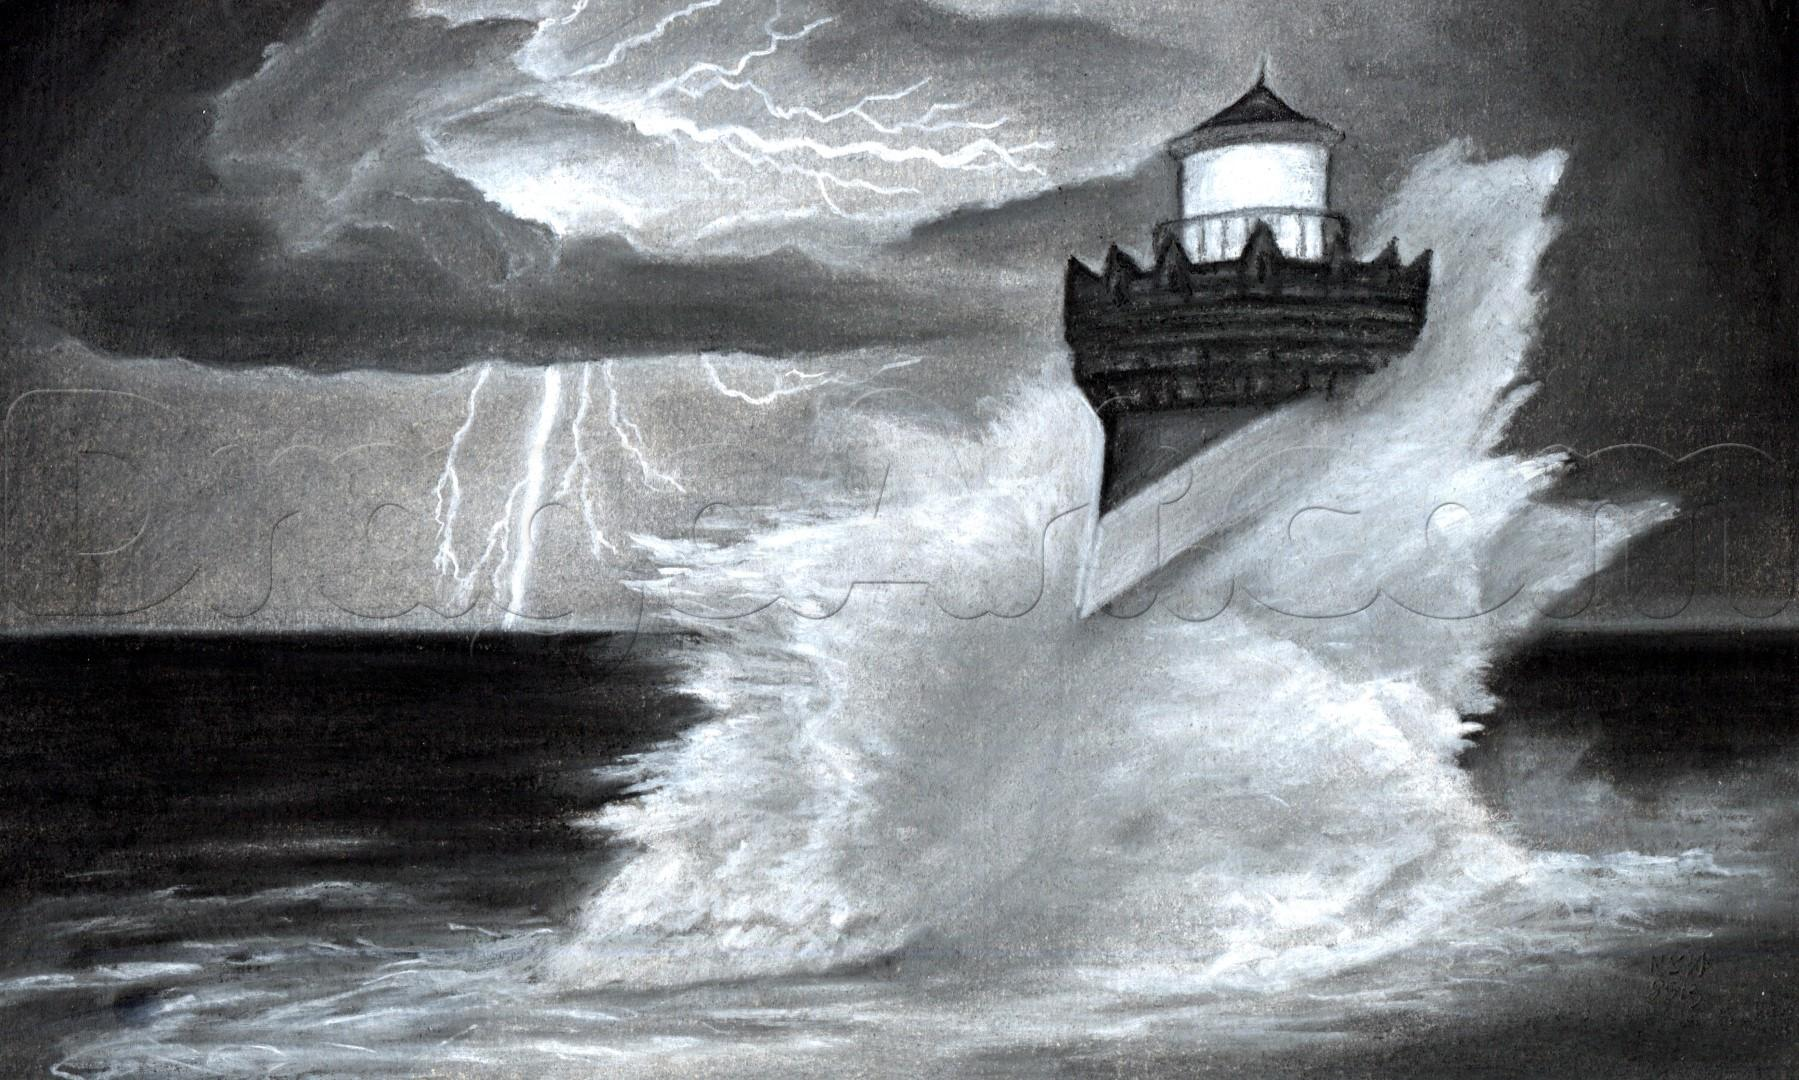 Drawn lighhouse charcoal drawing A draw Other how thunderstorm